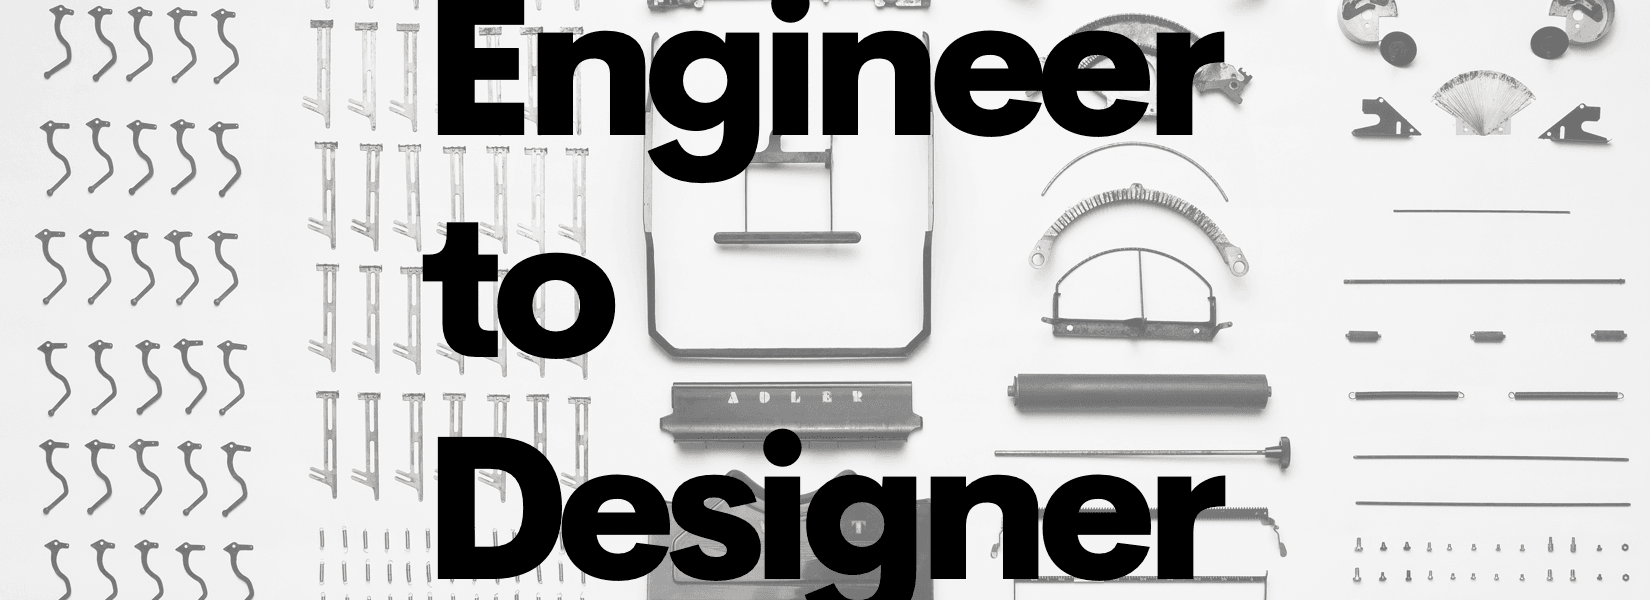 How a one-time engineer became an all-the-time designer